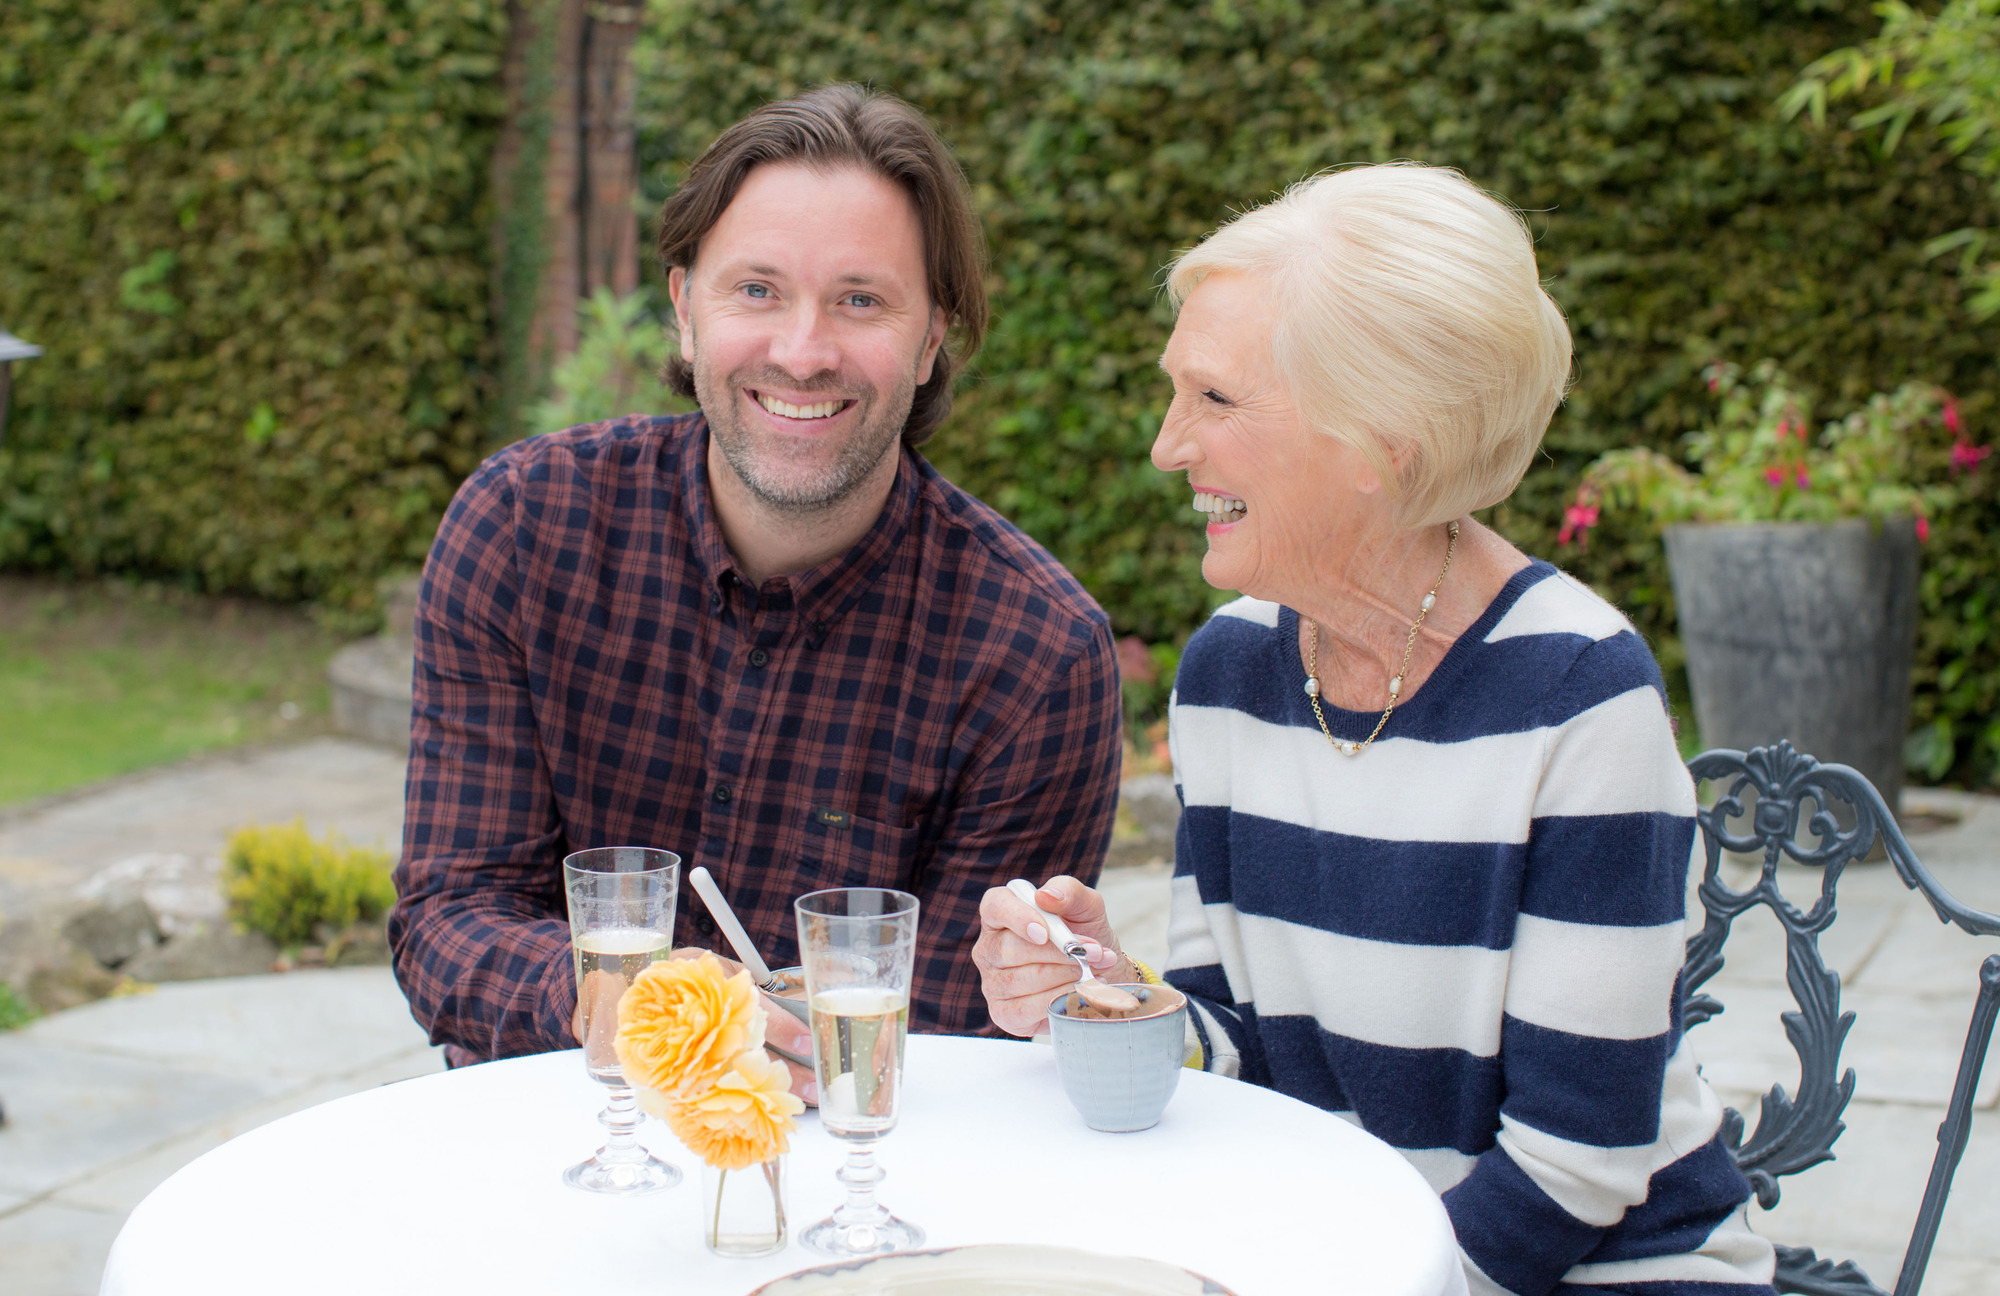 Mary Berry gets her flirt on with Swedish chef in new BBC series